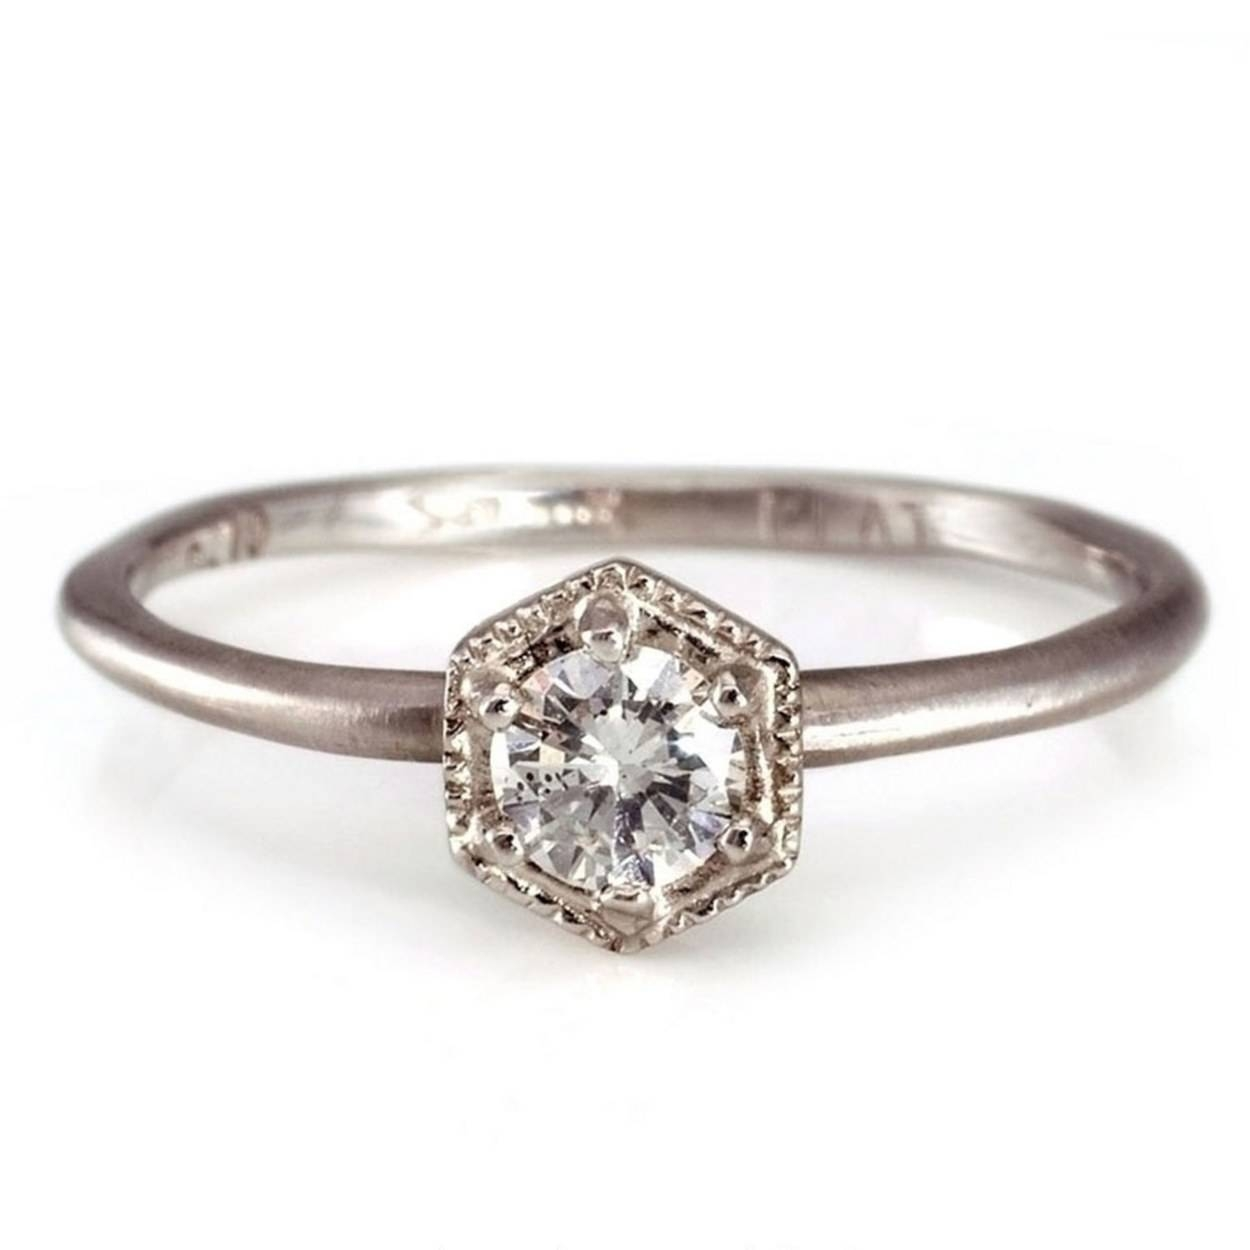 Affordable Engagement Rings Under $1,000 | Glamour Within Inset Engagement Rings (View 4 of 15)